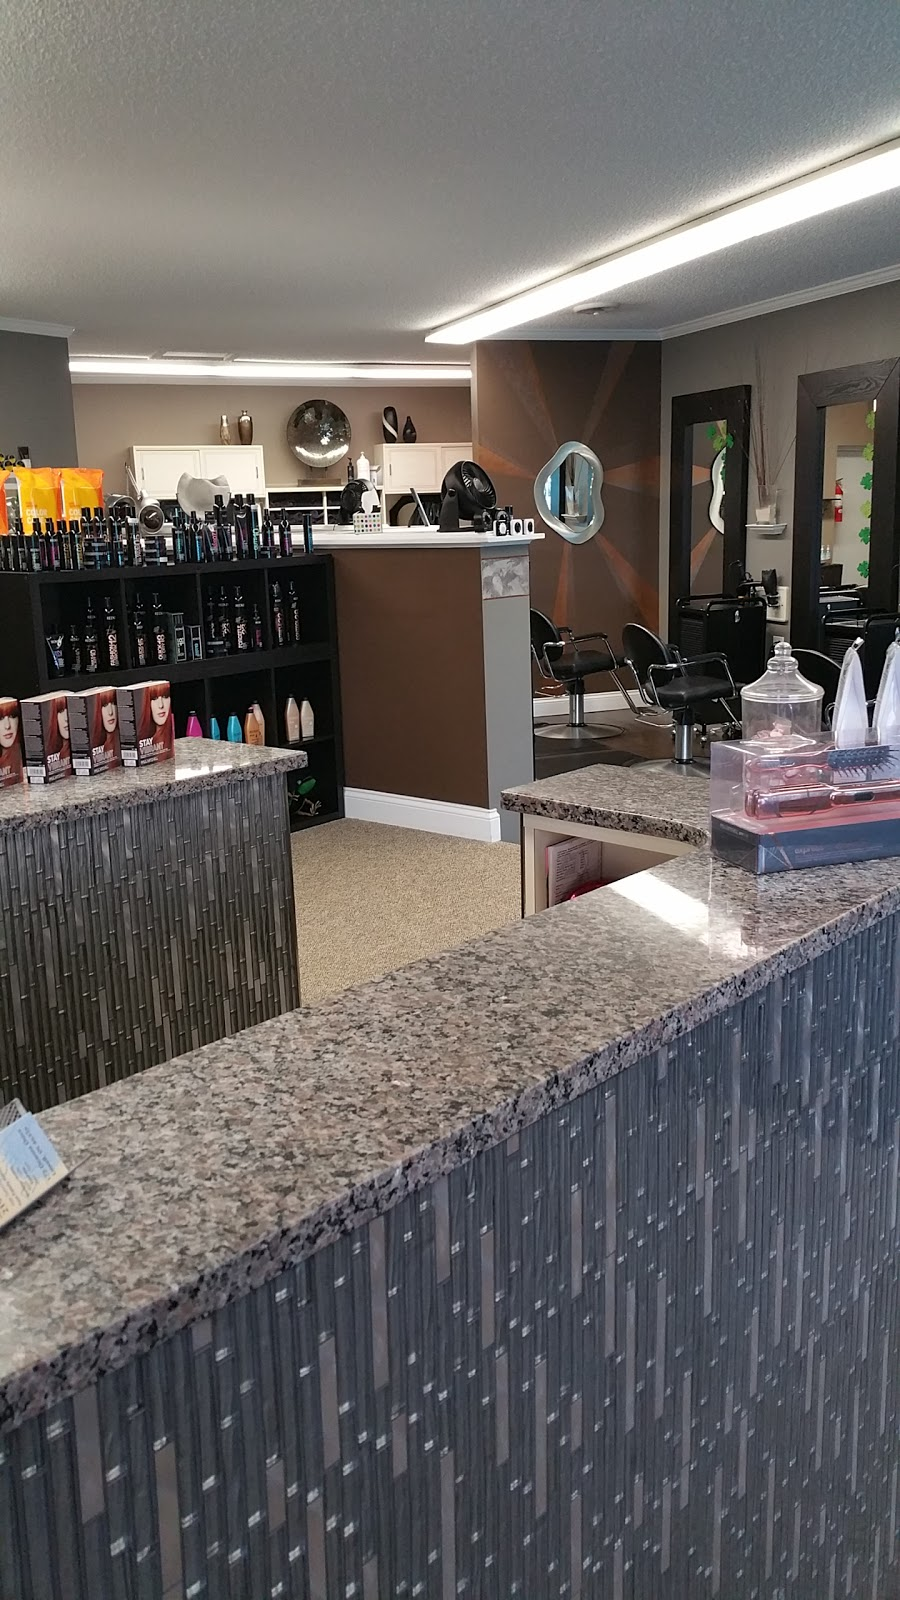 Hair Shaak - hair care  | Photo 7 of 7 | Address: 172 Deanna Dr, Lowell, IN 46356, USA | Phone: (219) 696-6900